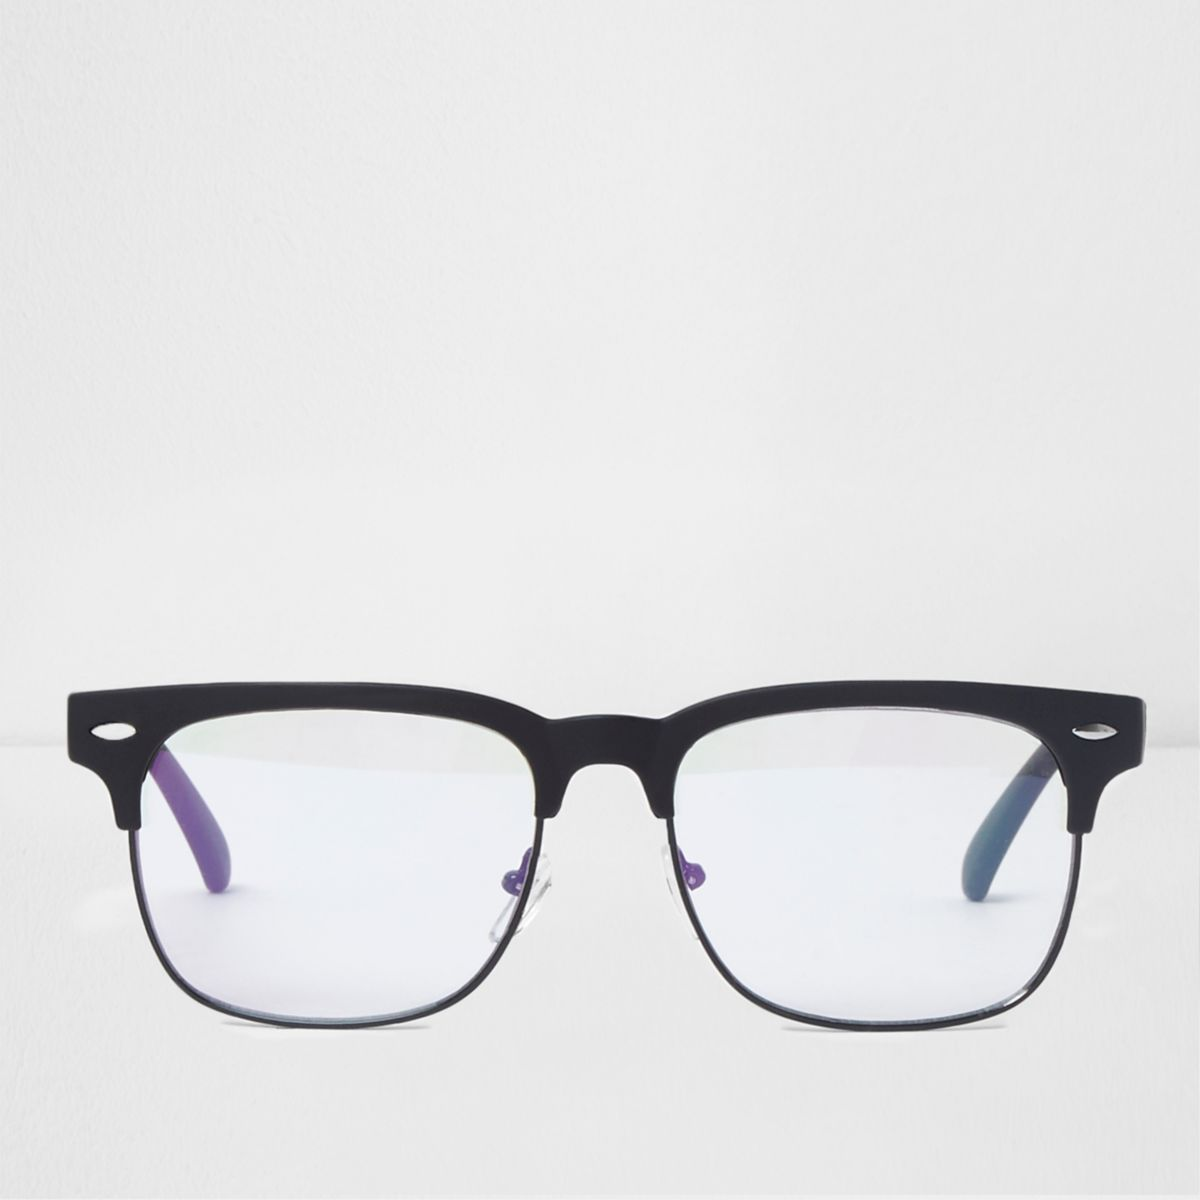 Black clear lenses retro style glasses